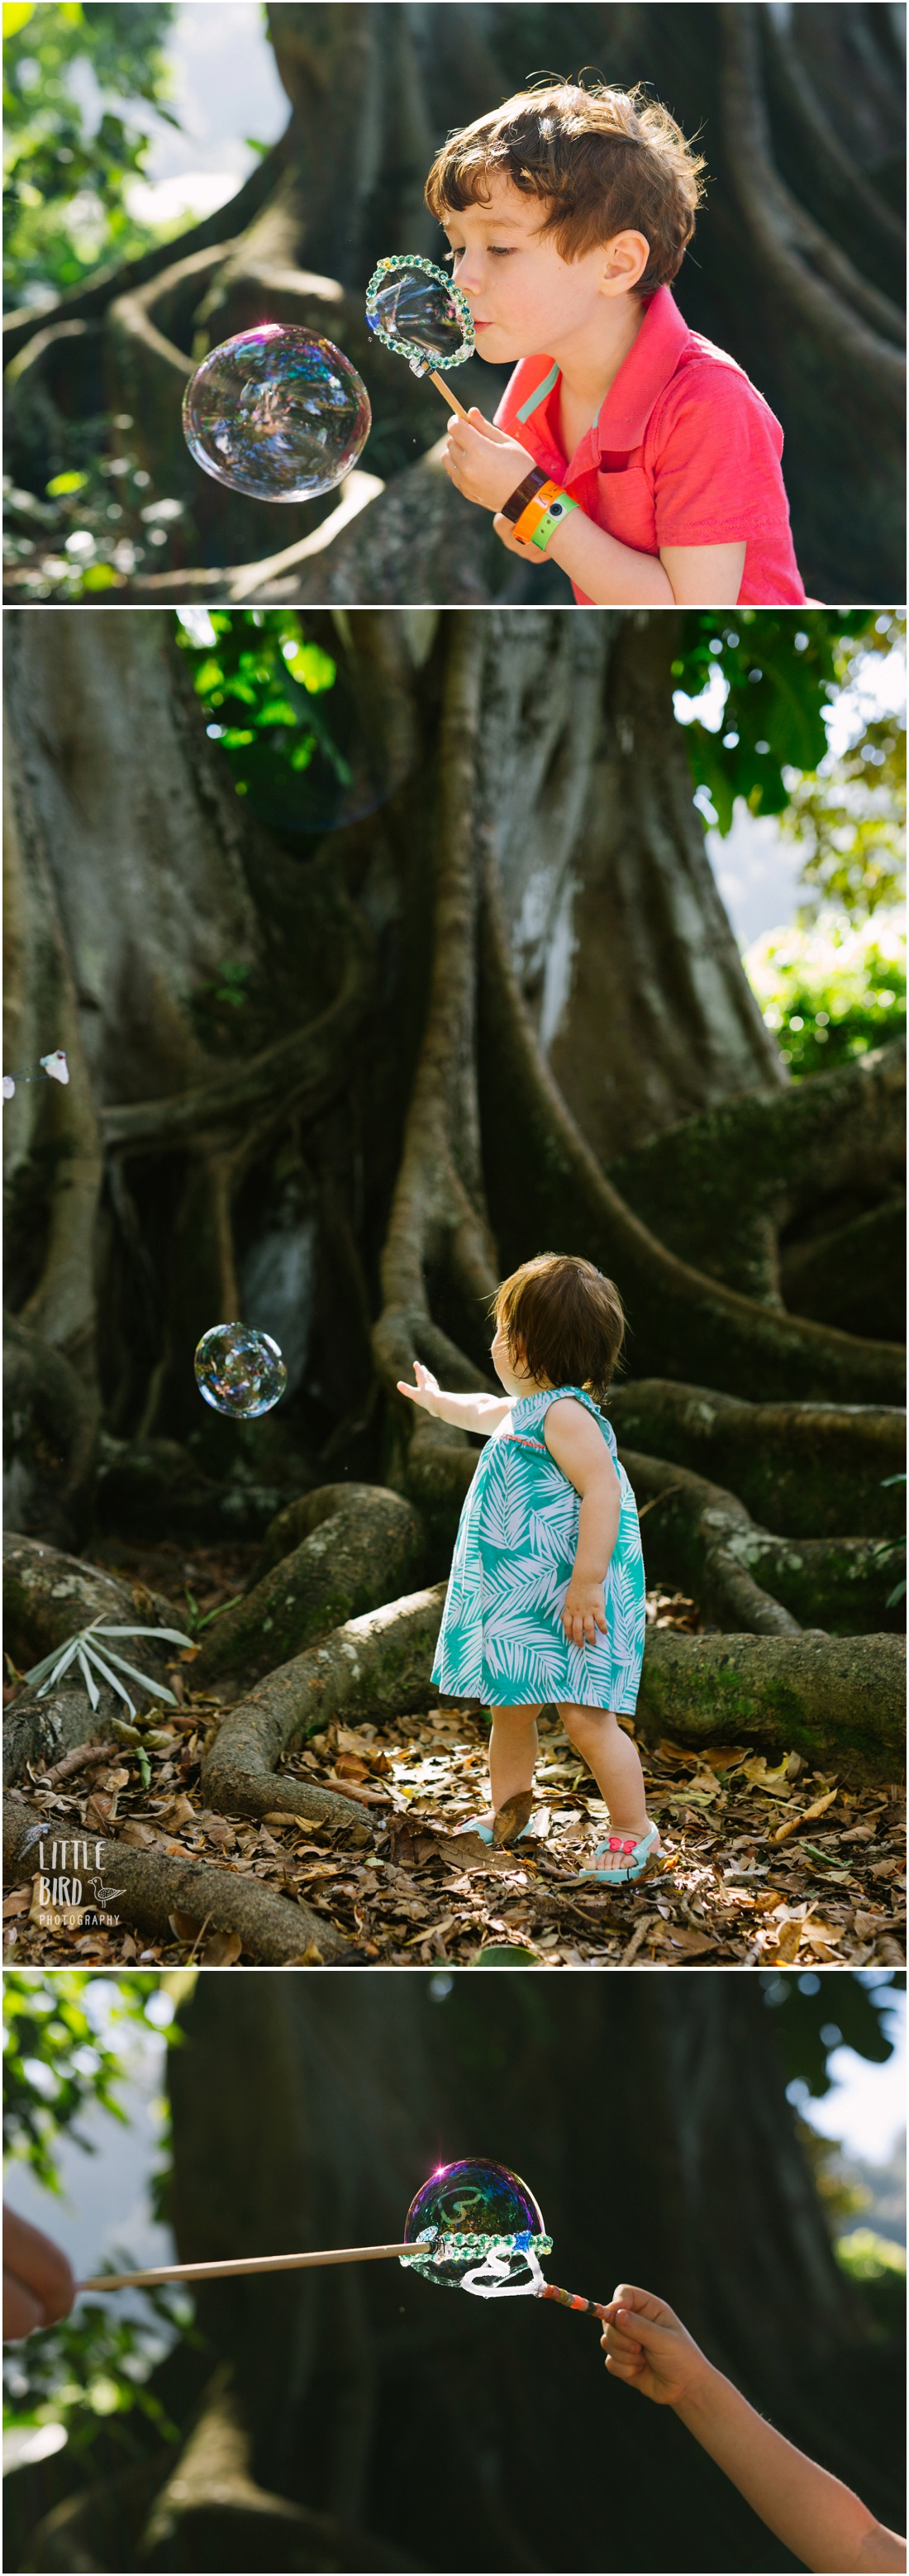 girl playing with bubbles in a tropical park in hawaii